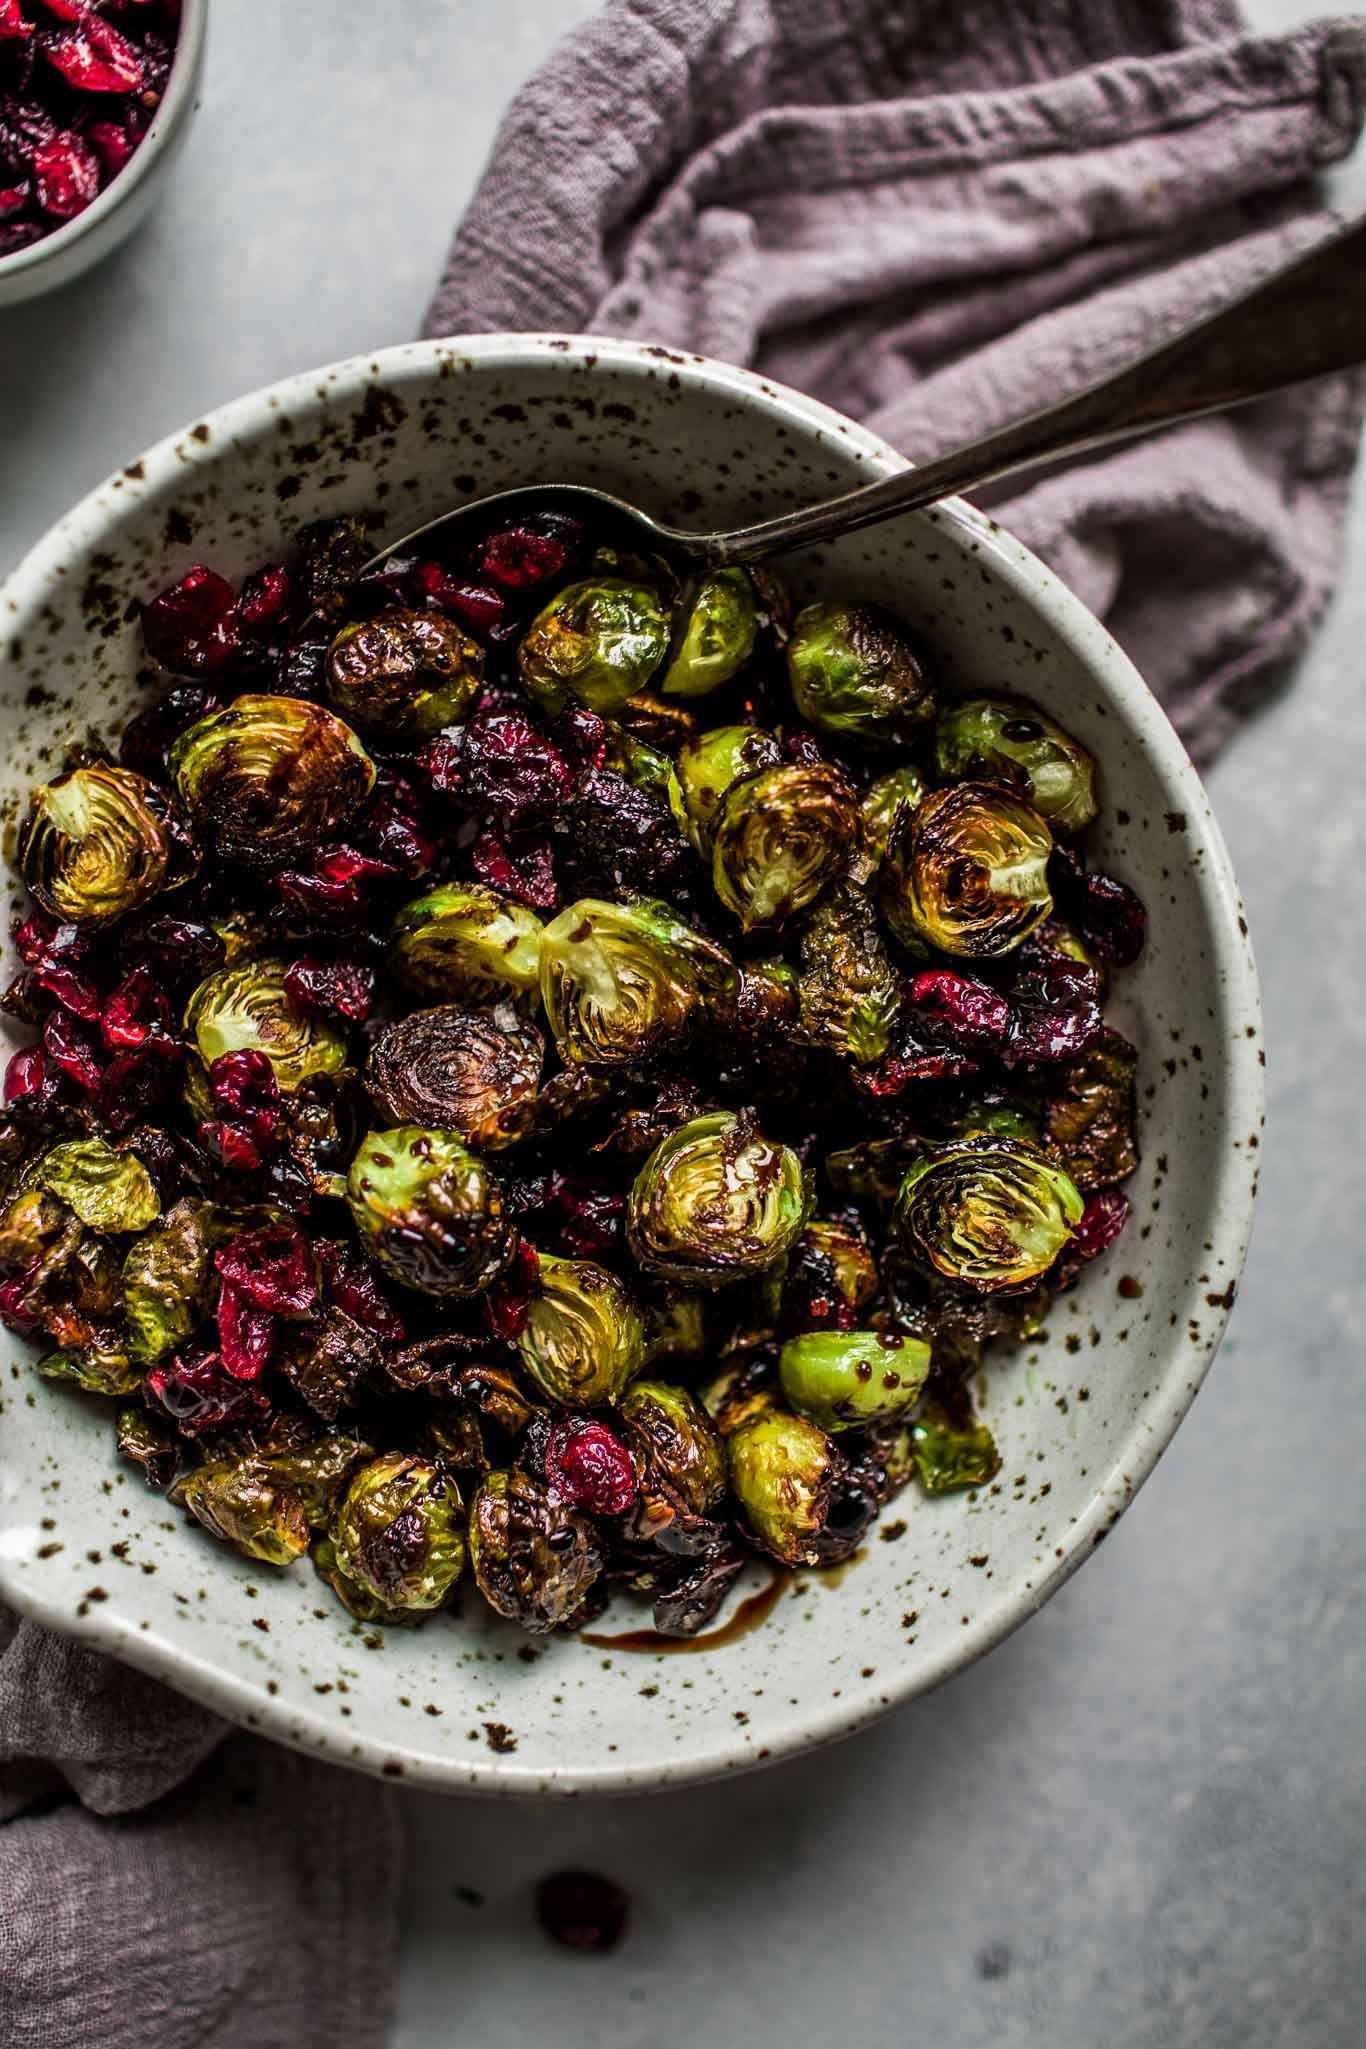 Overhead shot of bowl of roasted brussels sprouts with balsamic reduction & cranberries.